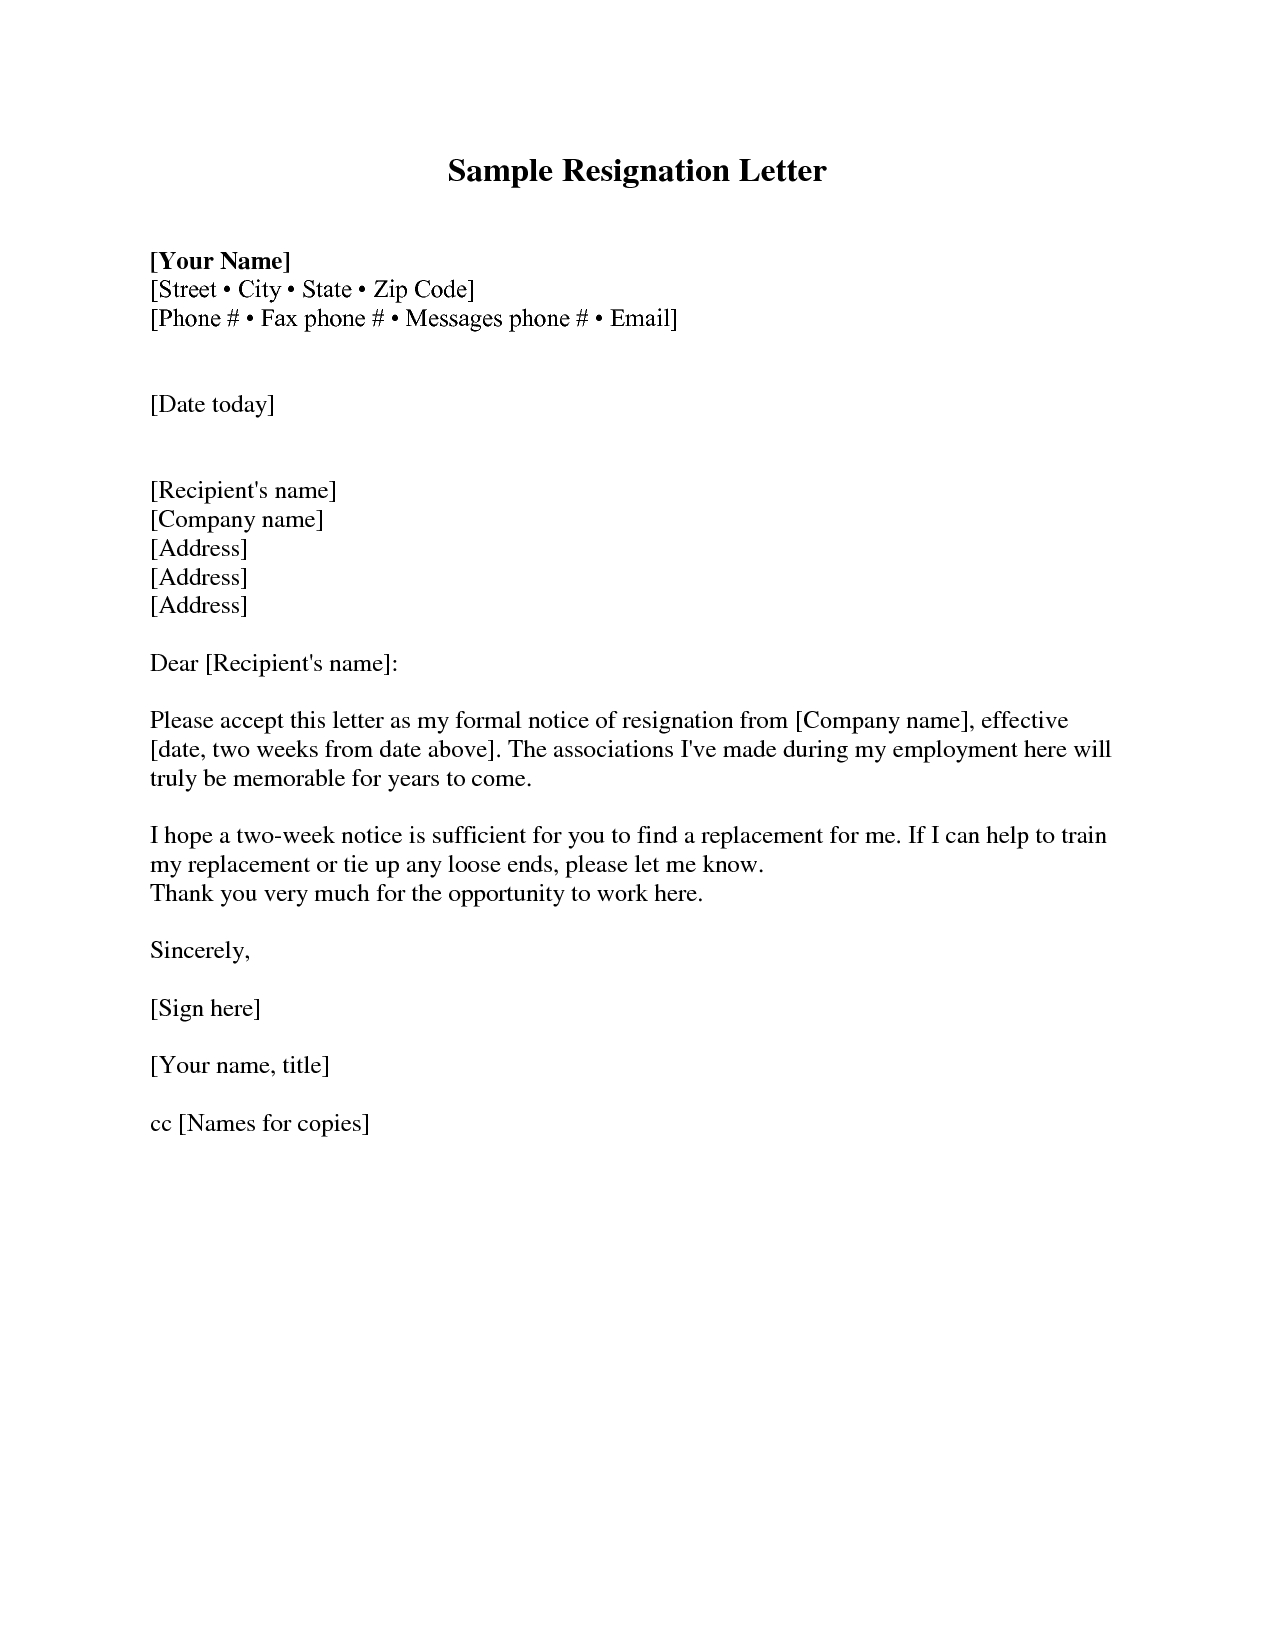 2 Week Notice Letter Template - Resignation Letter Sample 2 Weeks Notice Free2img